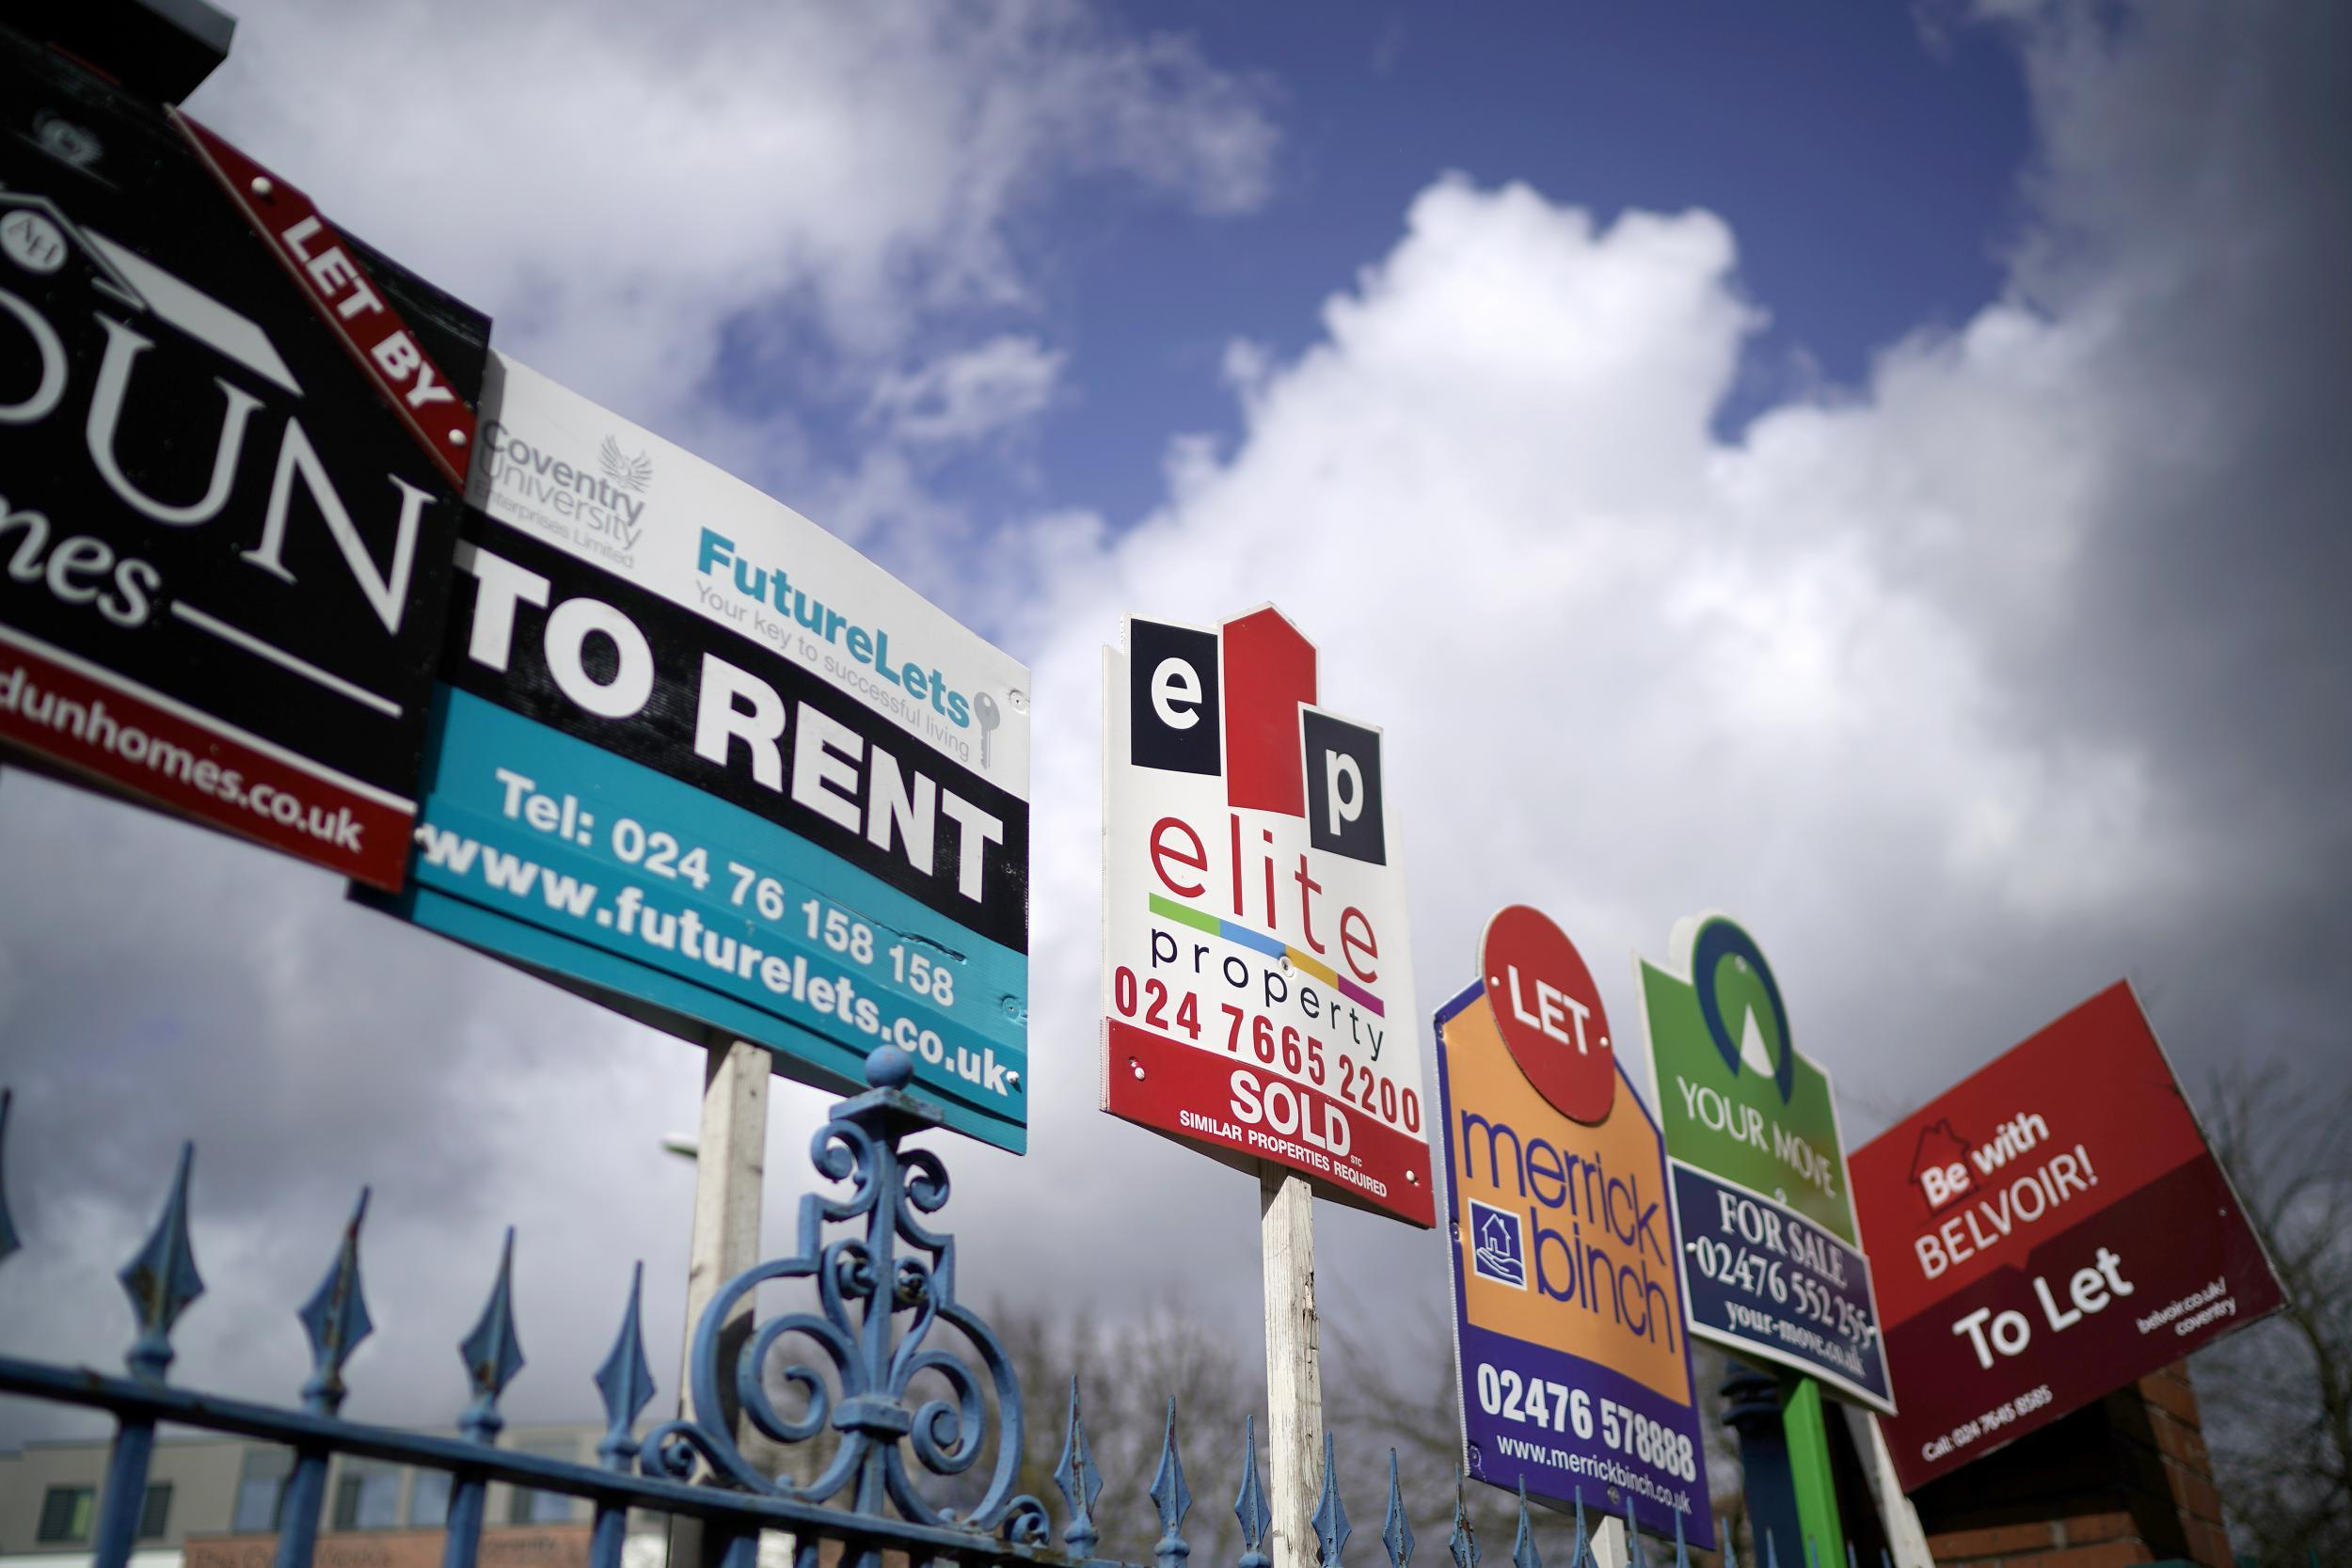 Extending the mortgage payment holiday further highlights the precarious situation of renters